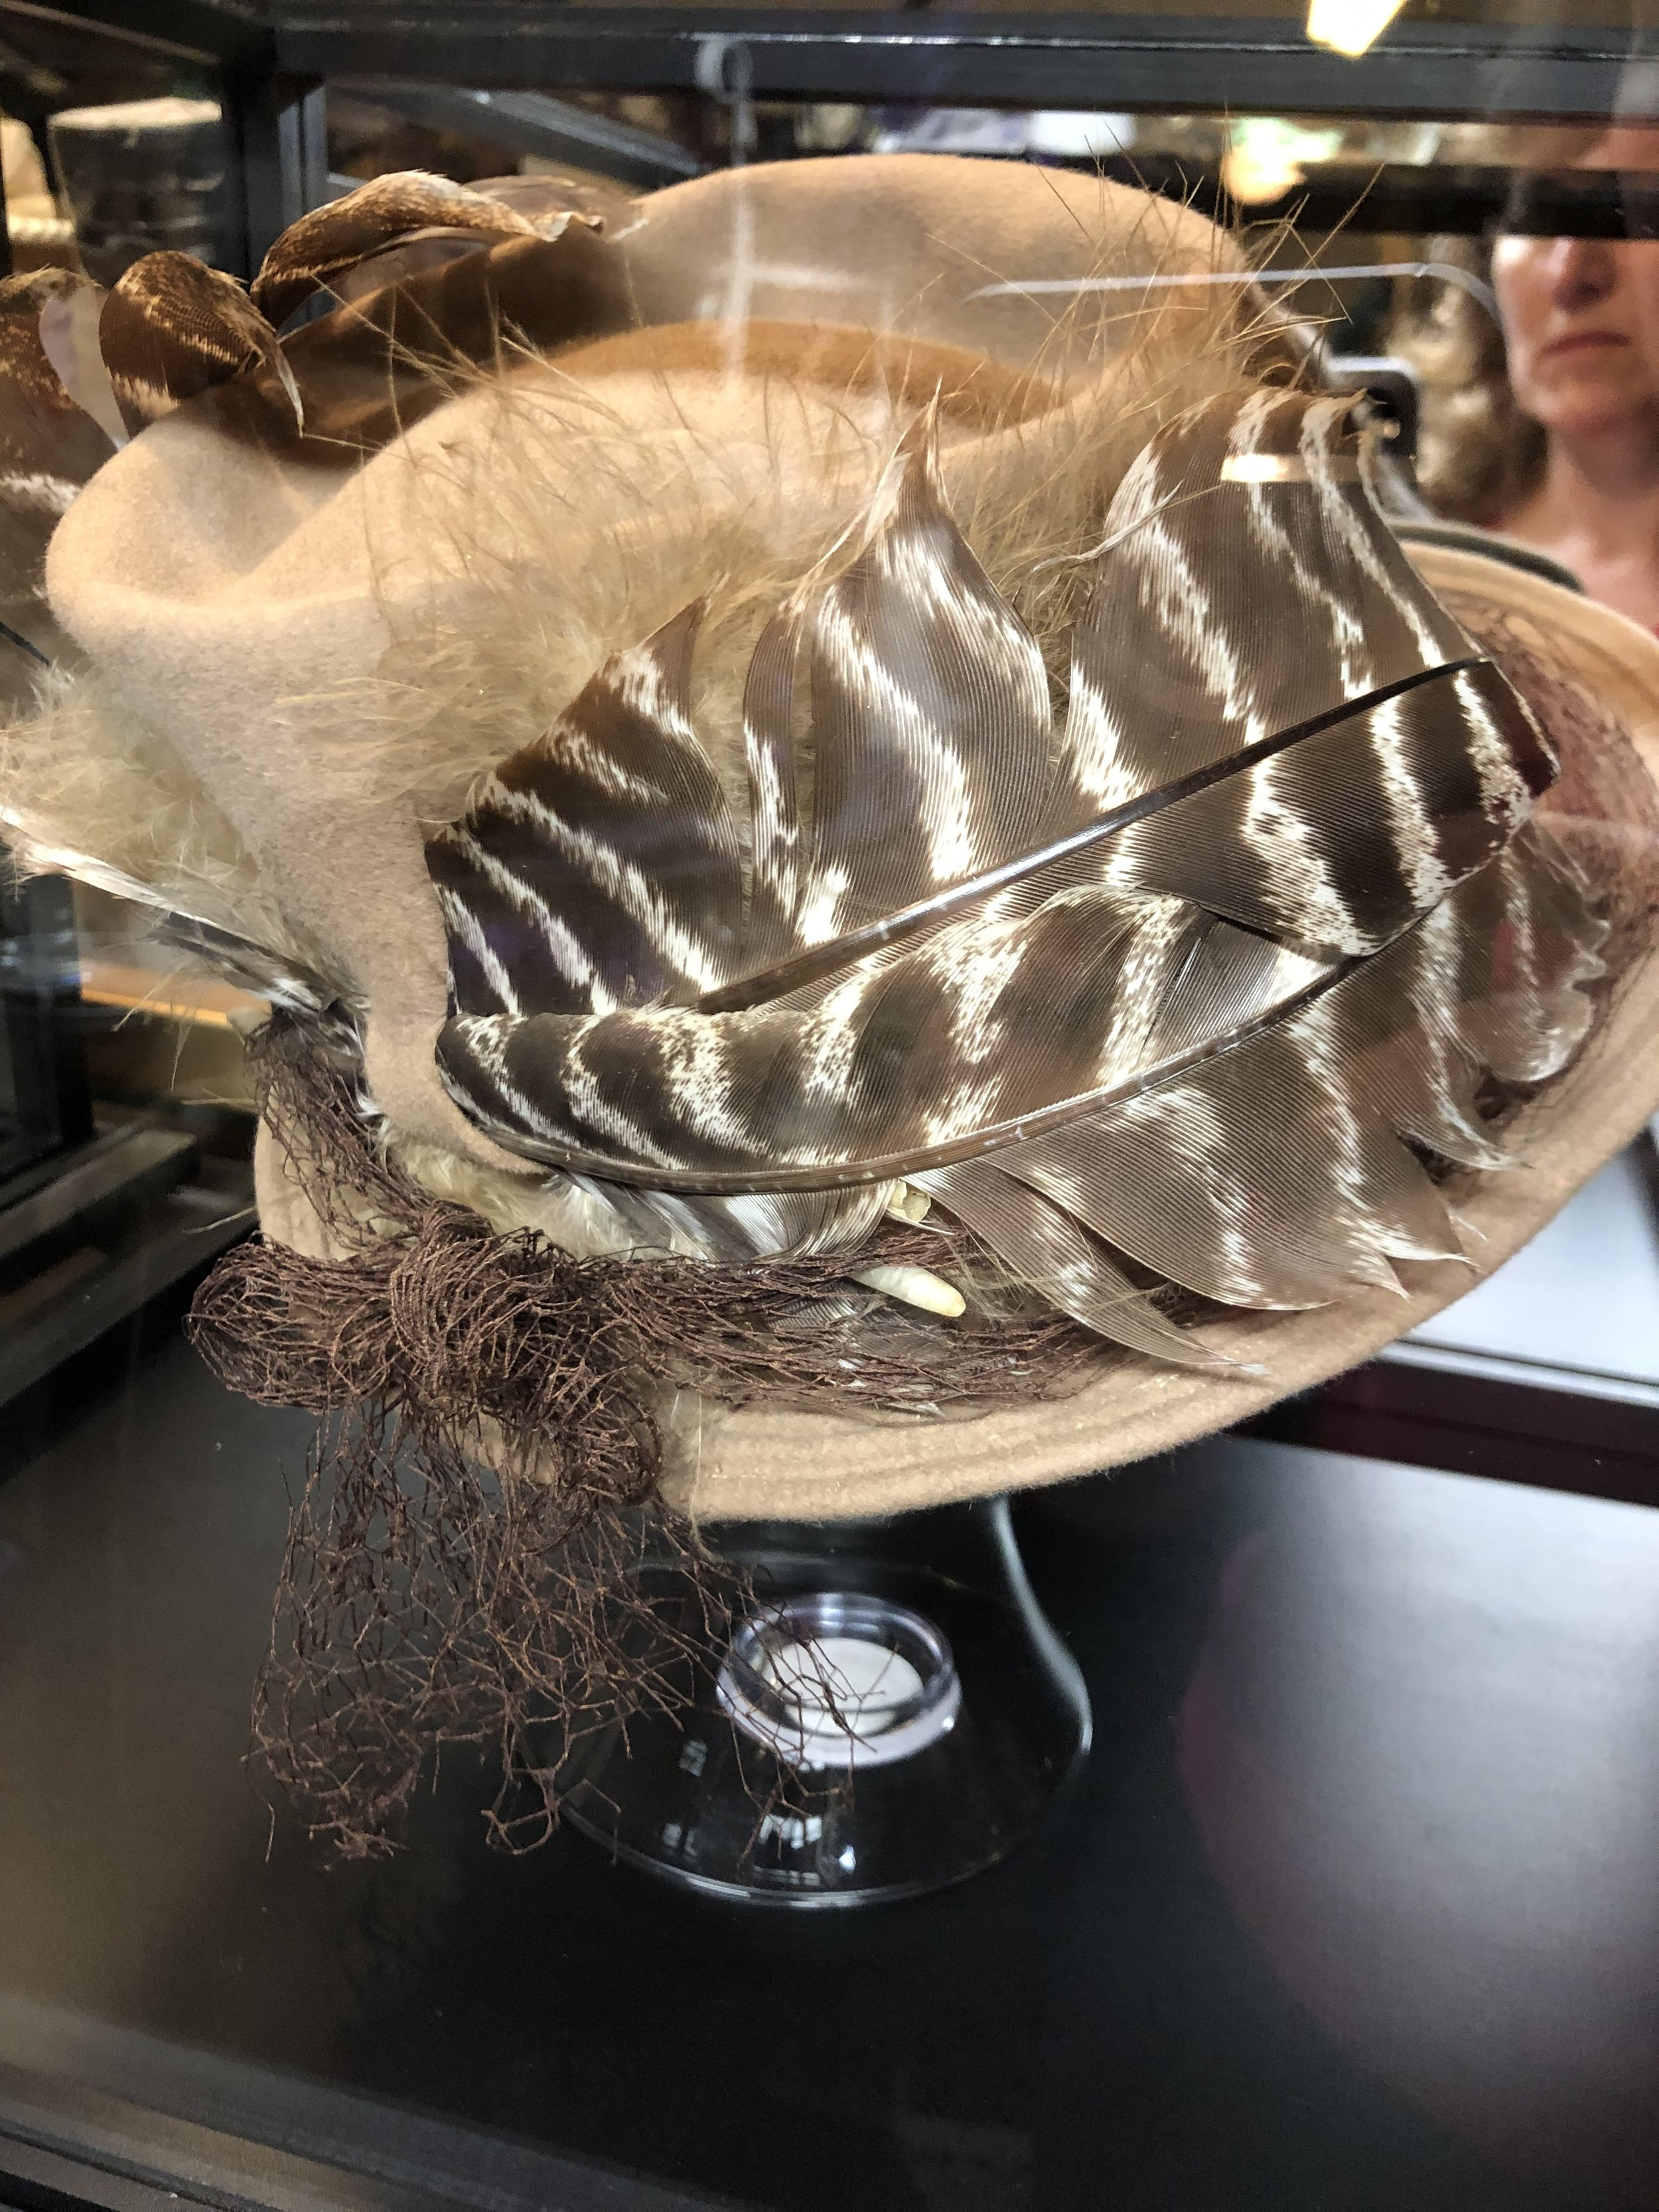 This Vogue Hat has a curled wild turkey feather.